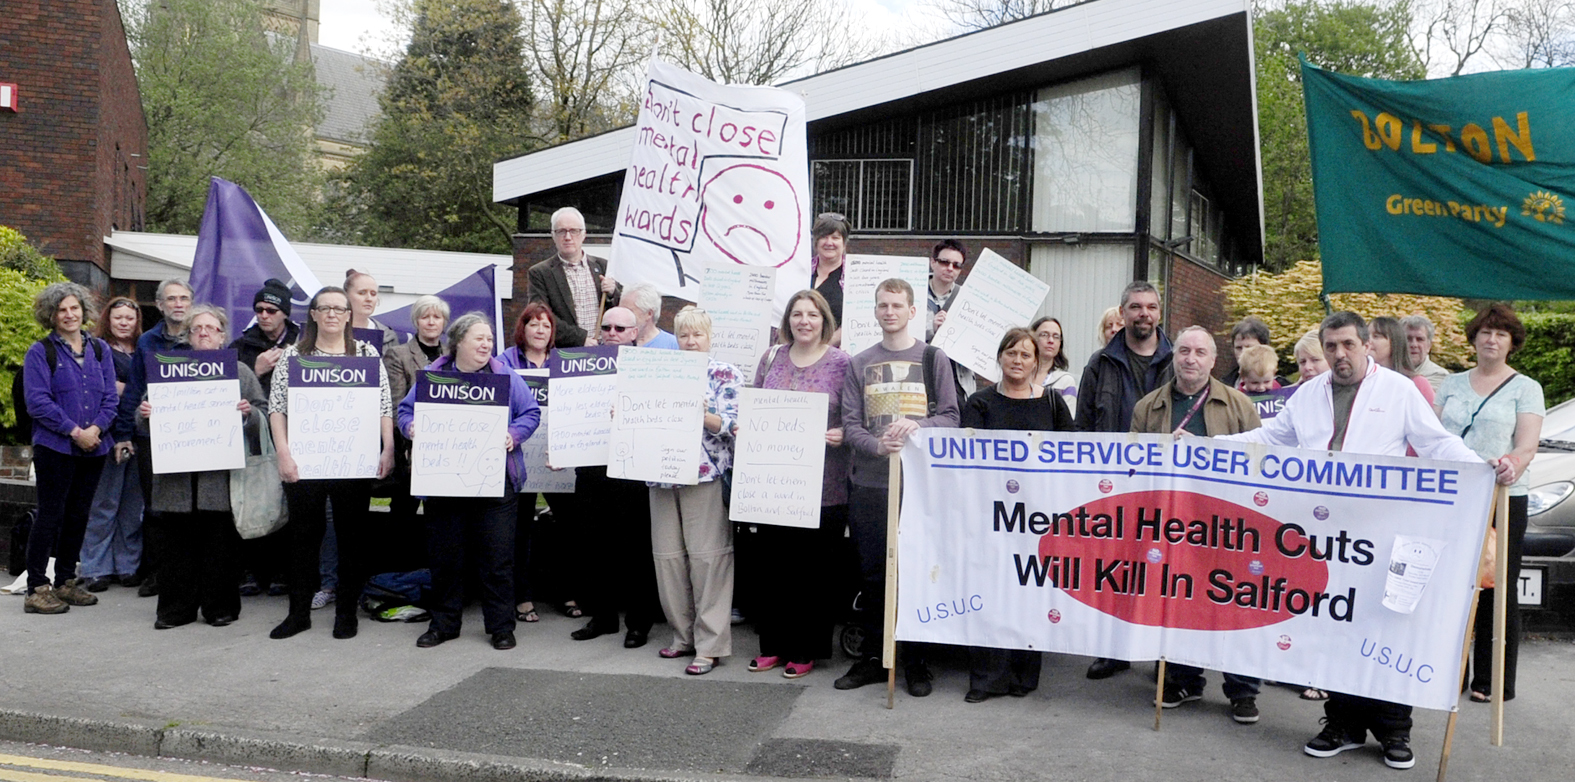 VIDEO: Plan to cut mental health beds at hospital approved despite protest